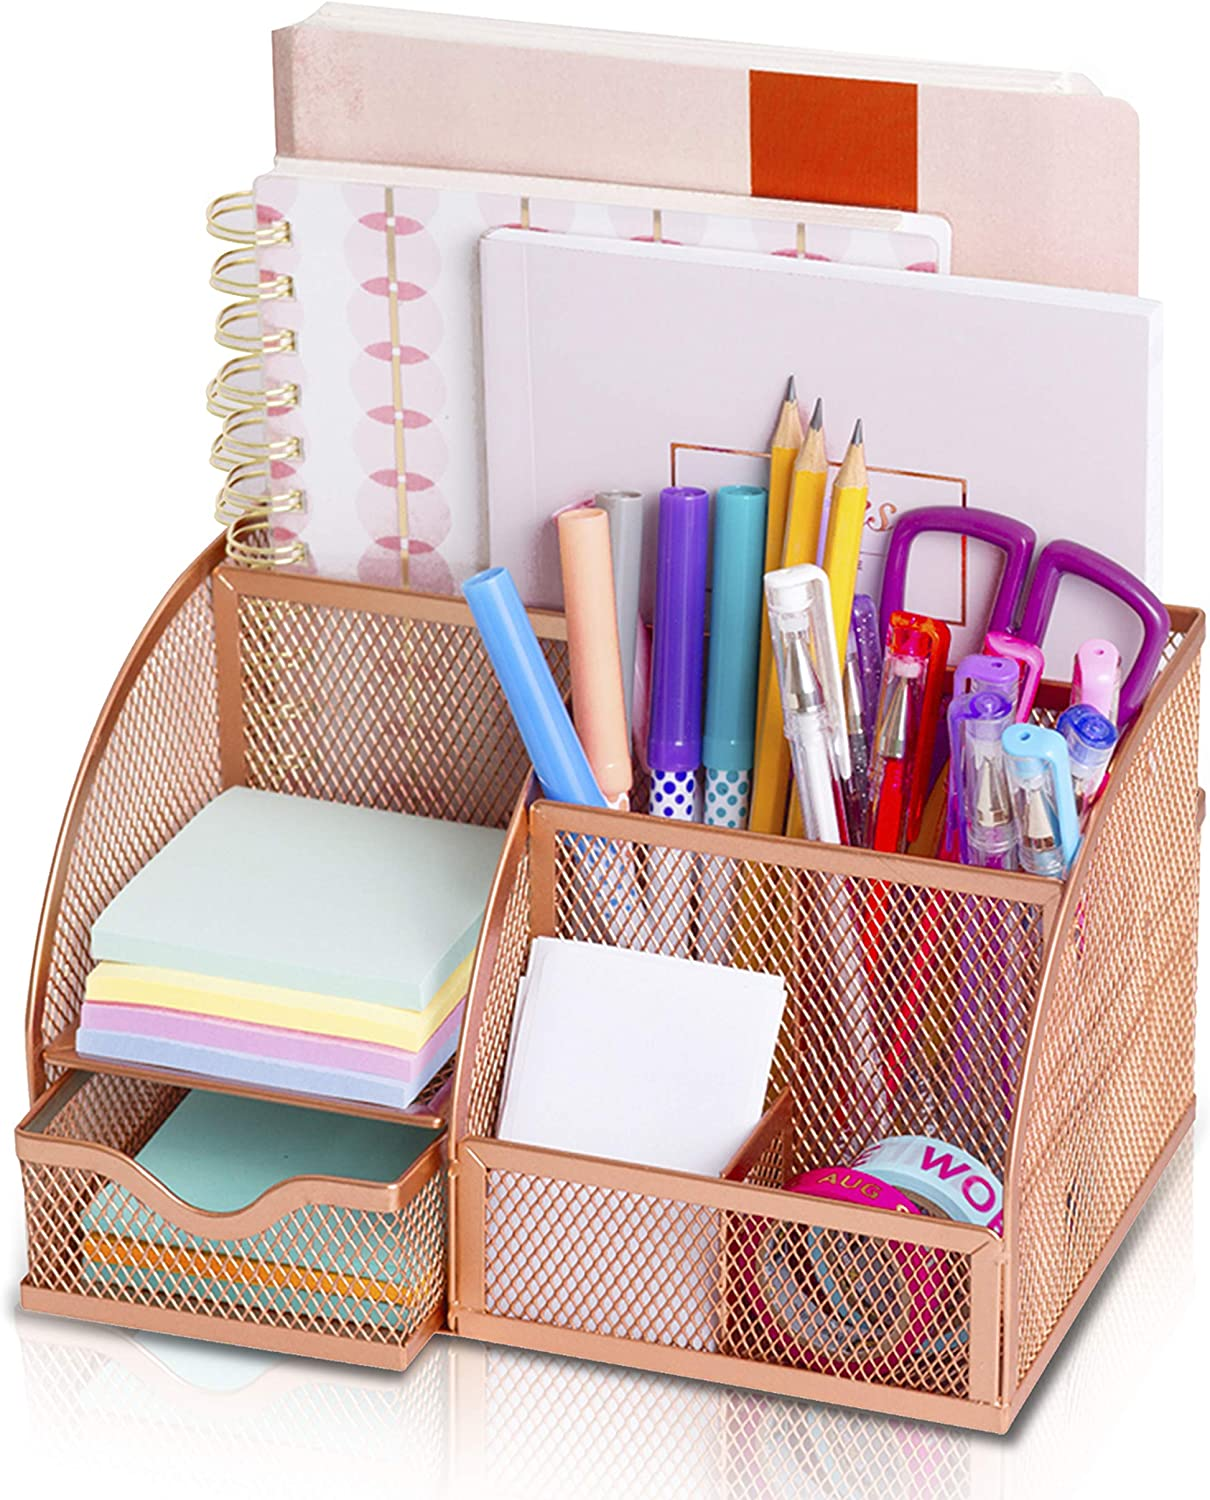 Desk Organizer All4You. Cute and Decorative Desk Accessory for Women. Multi-Functional Mesh Desktop, File Organizer and Pen Holder. Office Organizer for Home Office Supplies (Rose Gold)